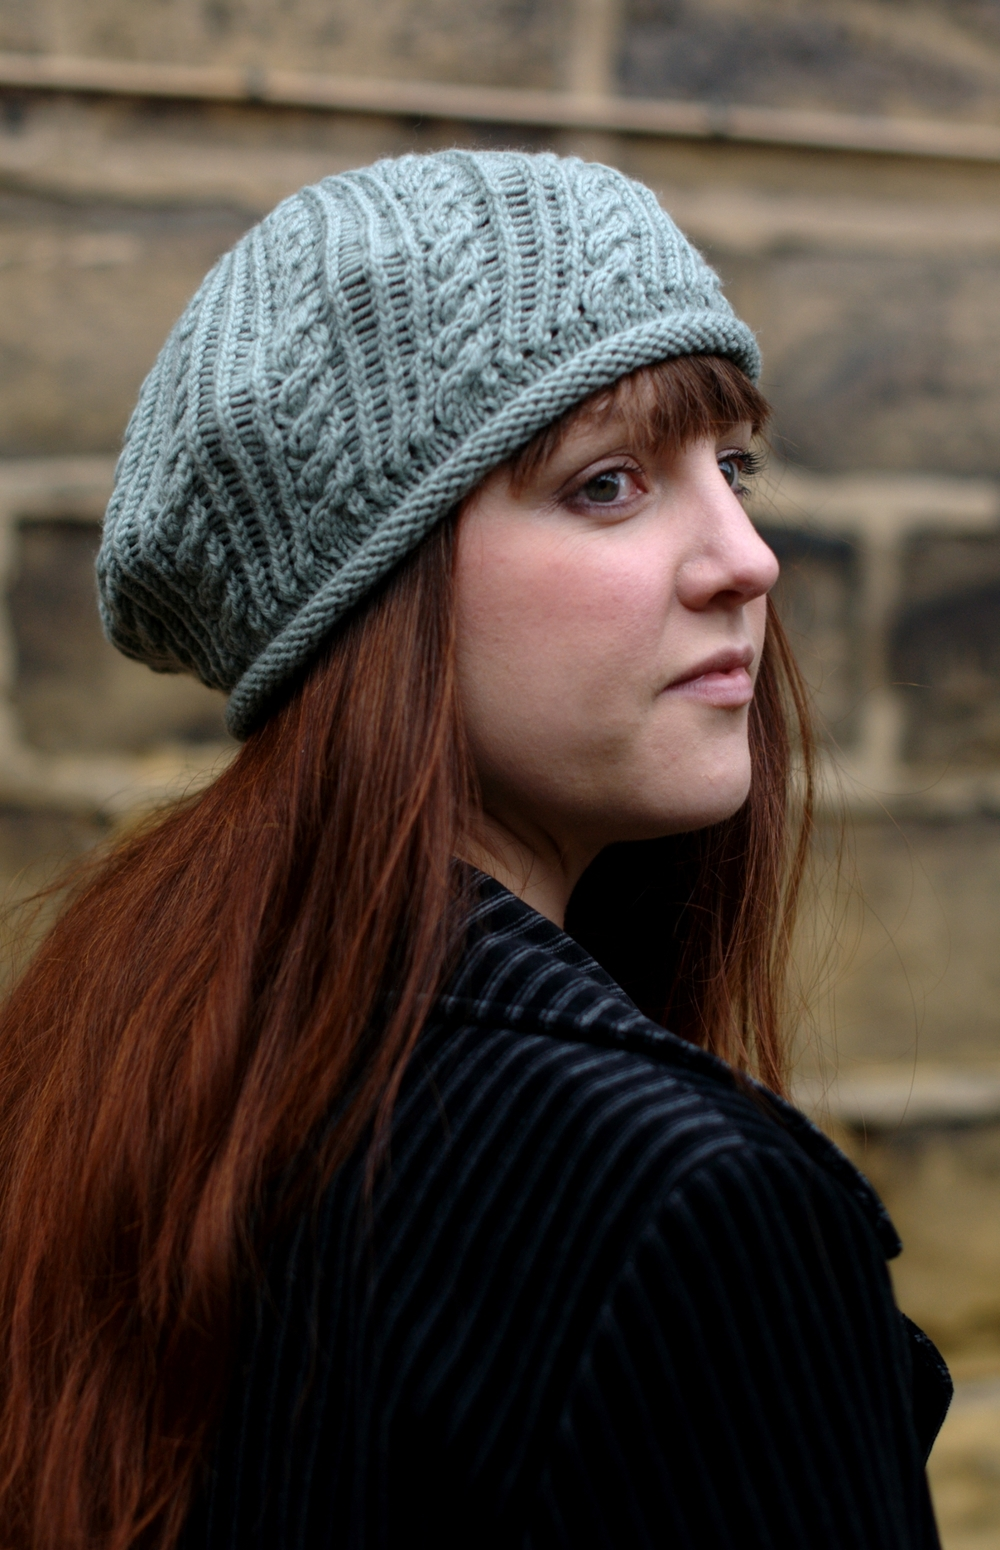 Wickery bias cable beret knitting pattern